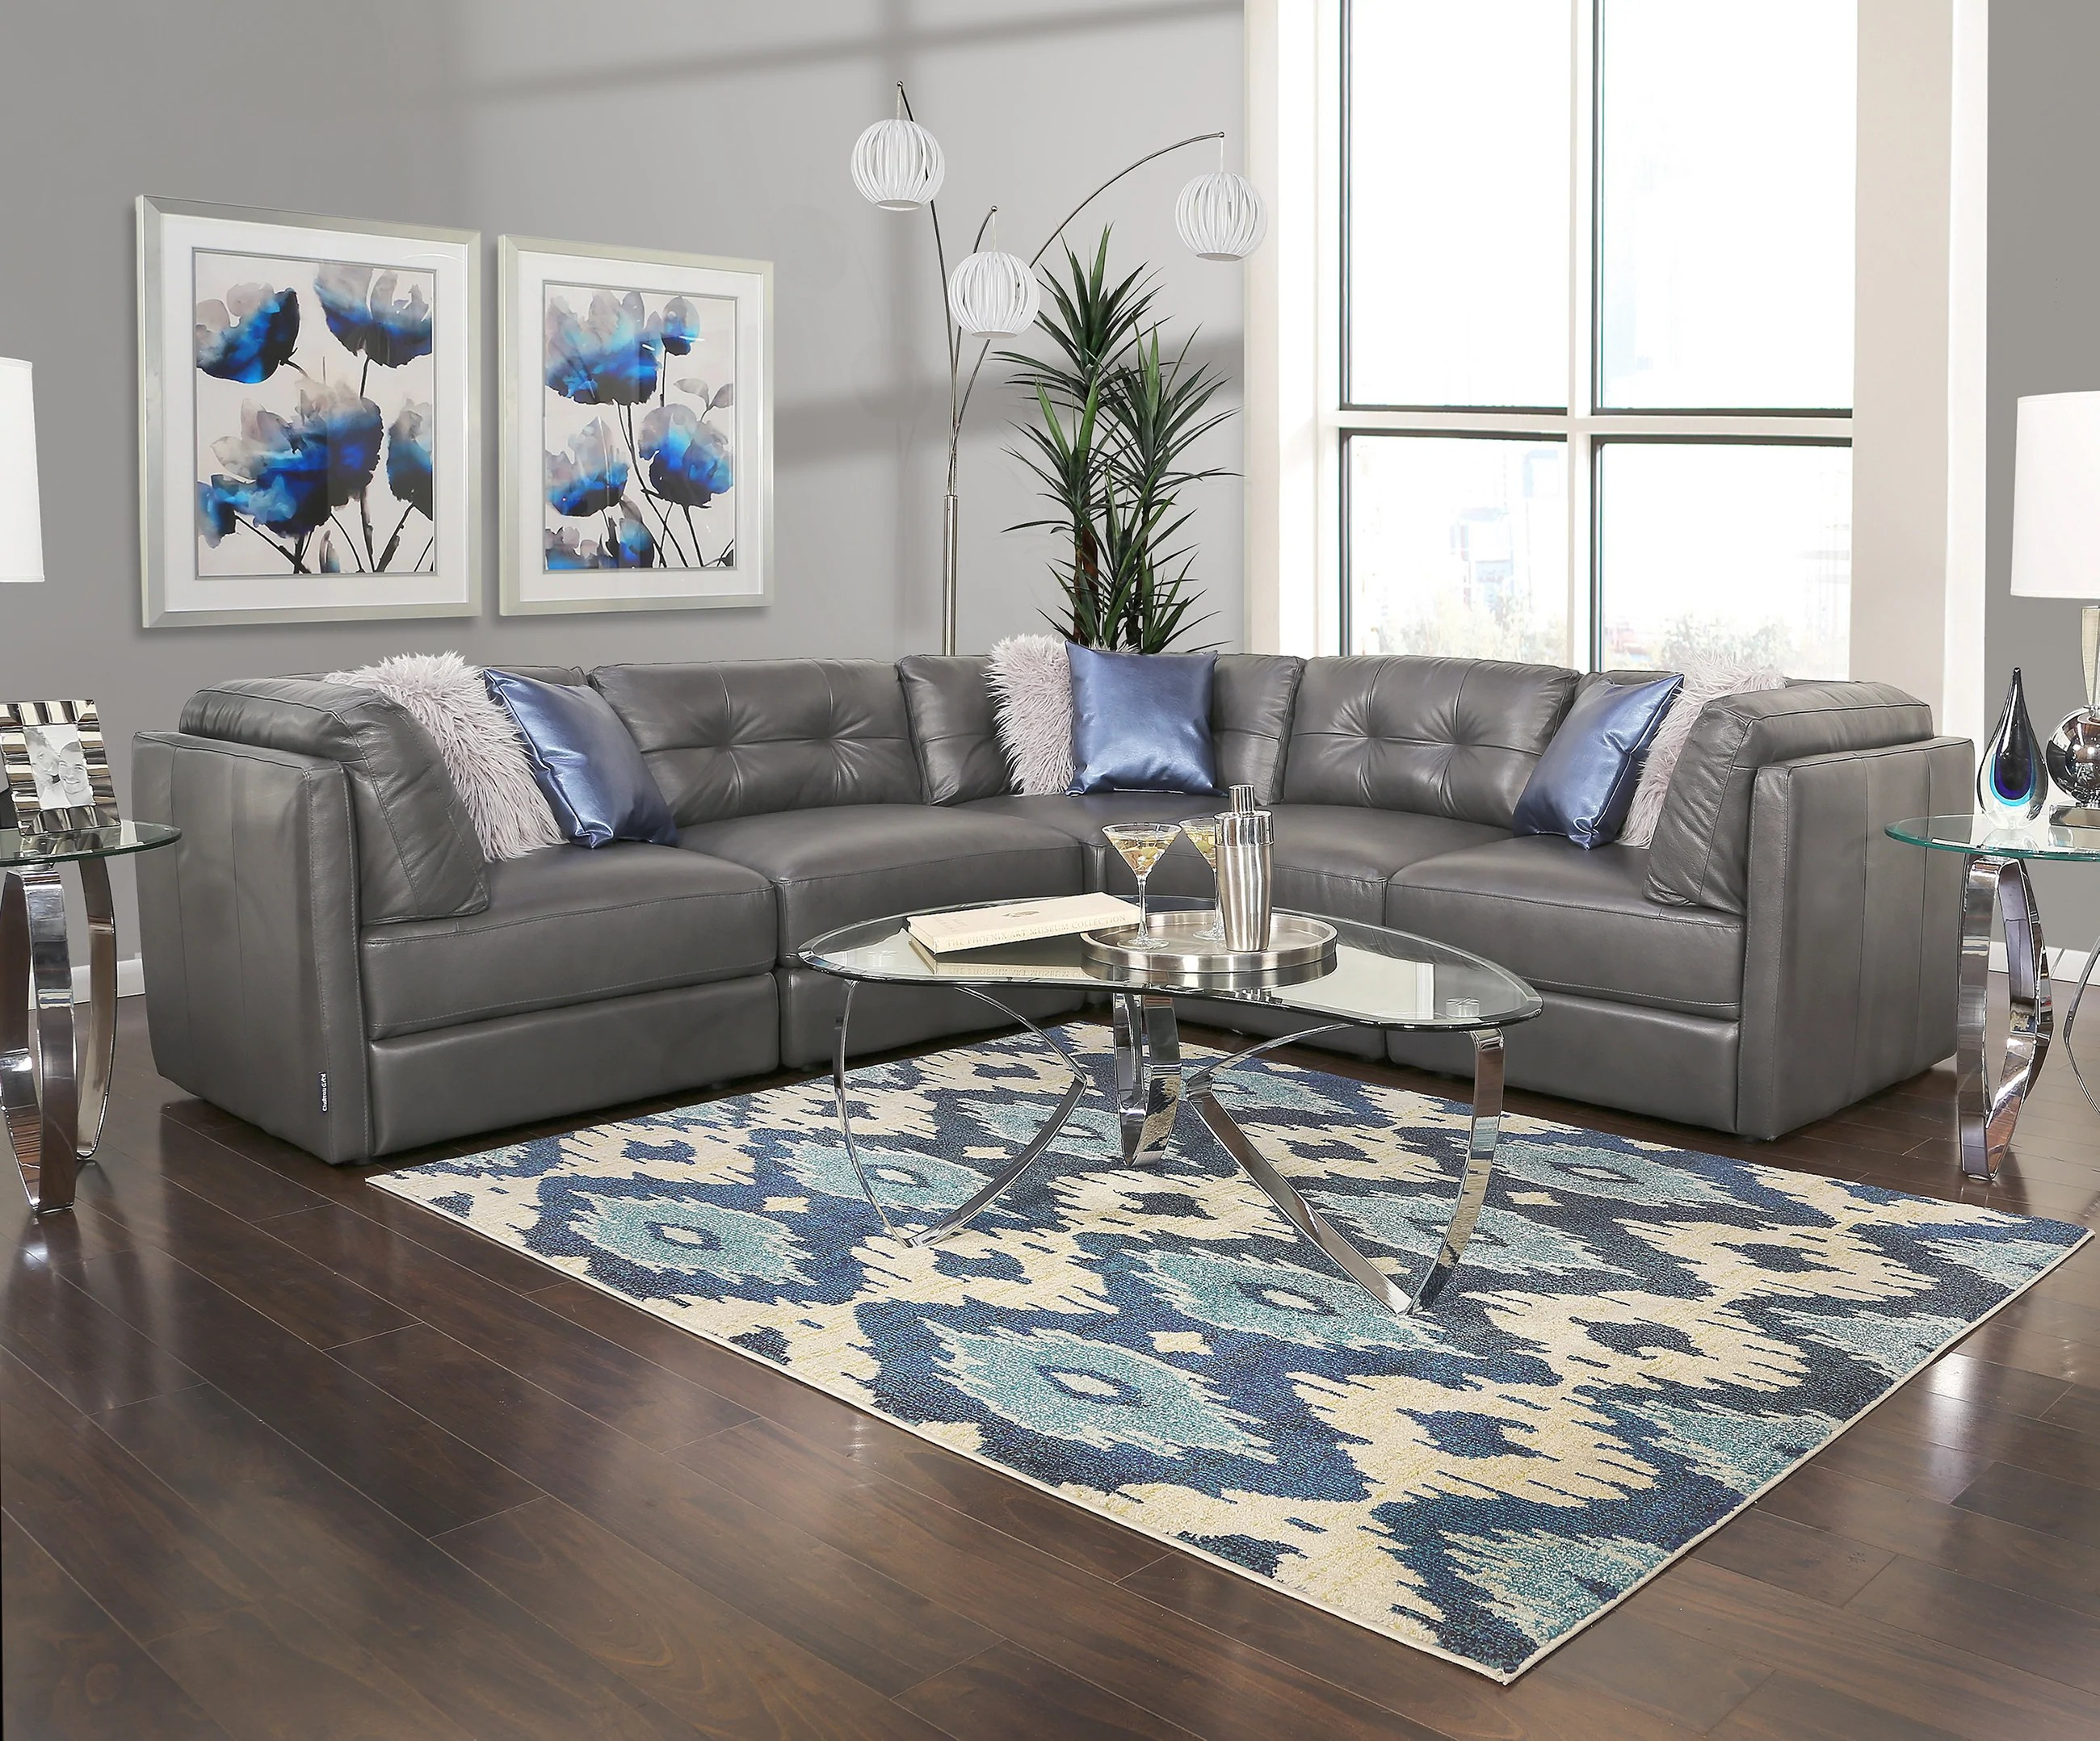 oakley grey 5 piece leather sectional sofa